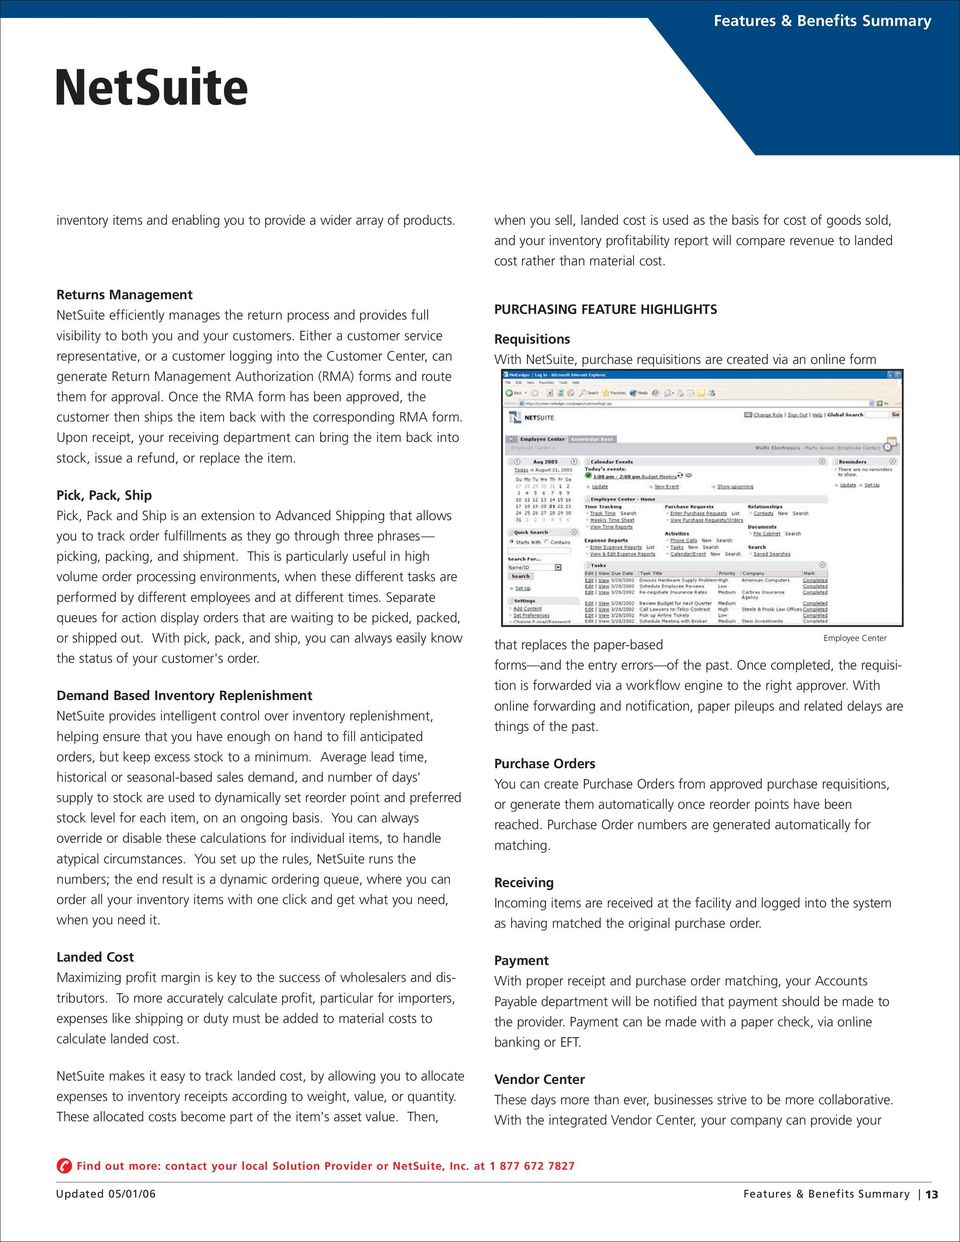 Features & Benefits Summary  Why NetSuite? - PDF